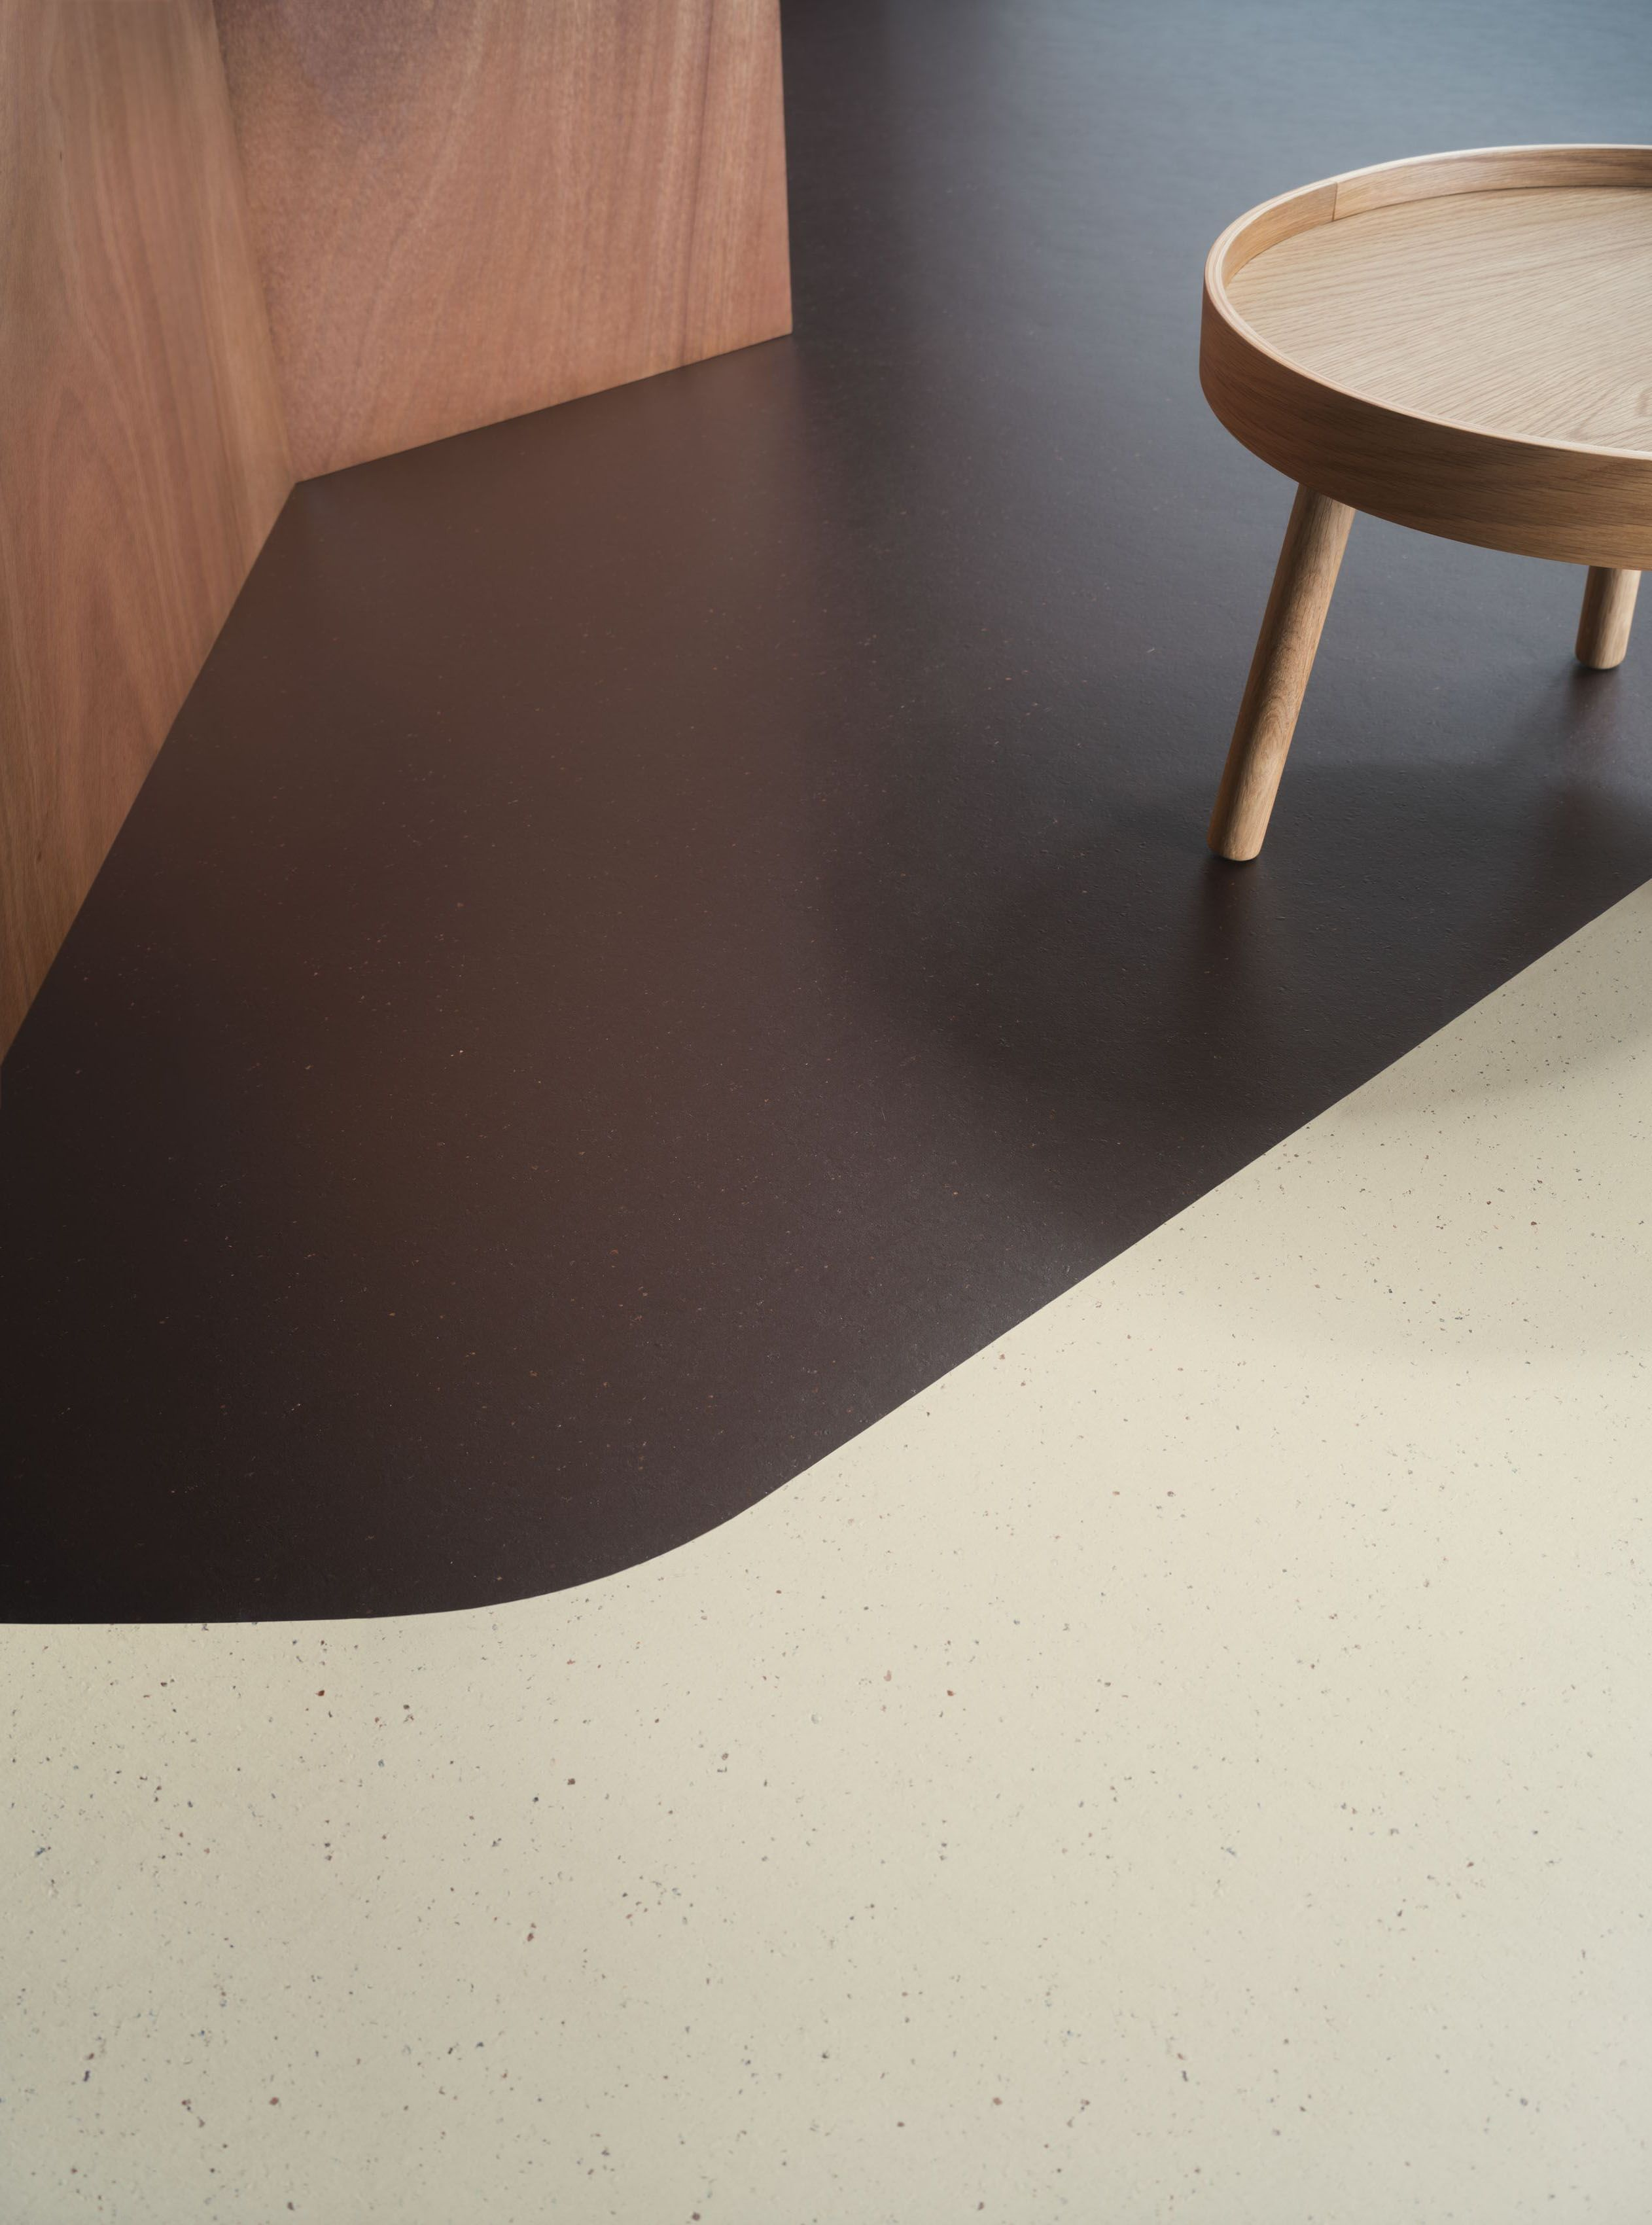 forbo flooring systems marmoleum cocoa with cocoa shells floor sustainability recycle. Black Bedroom Furniture Sets. Home Design Ideas